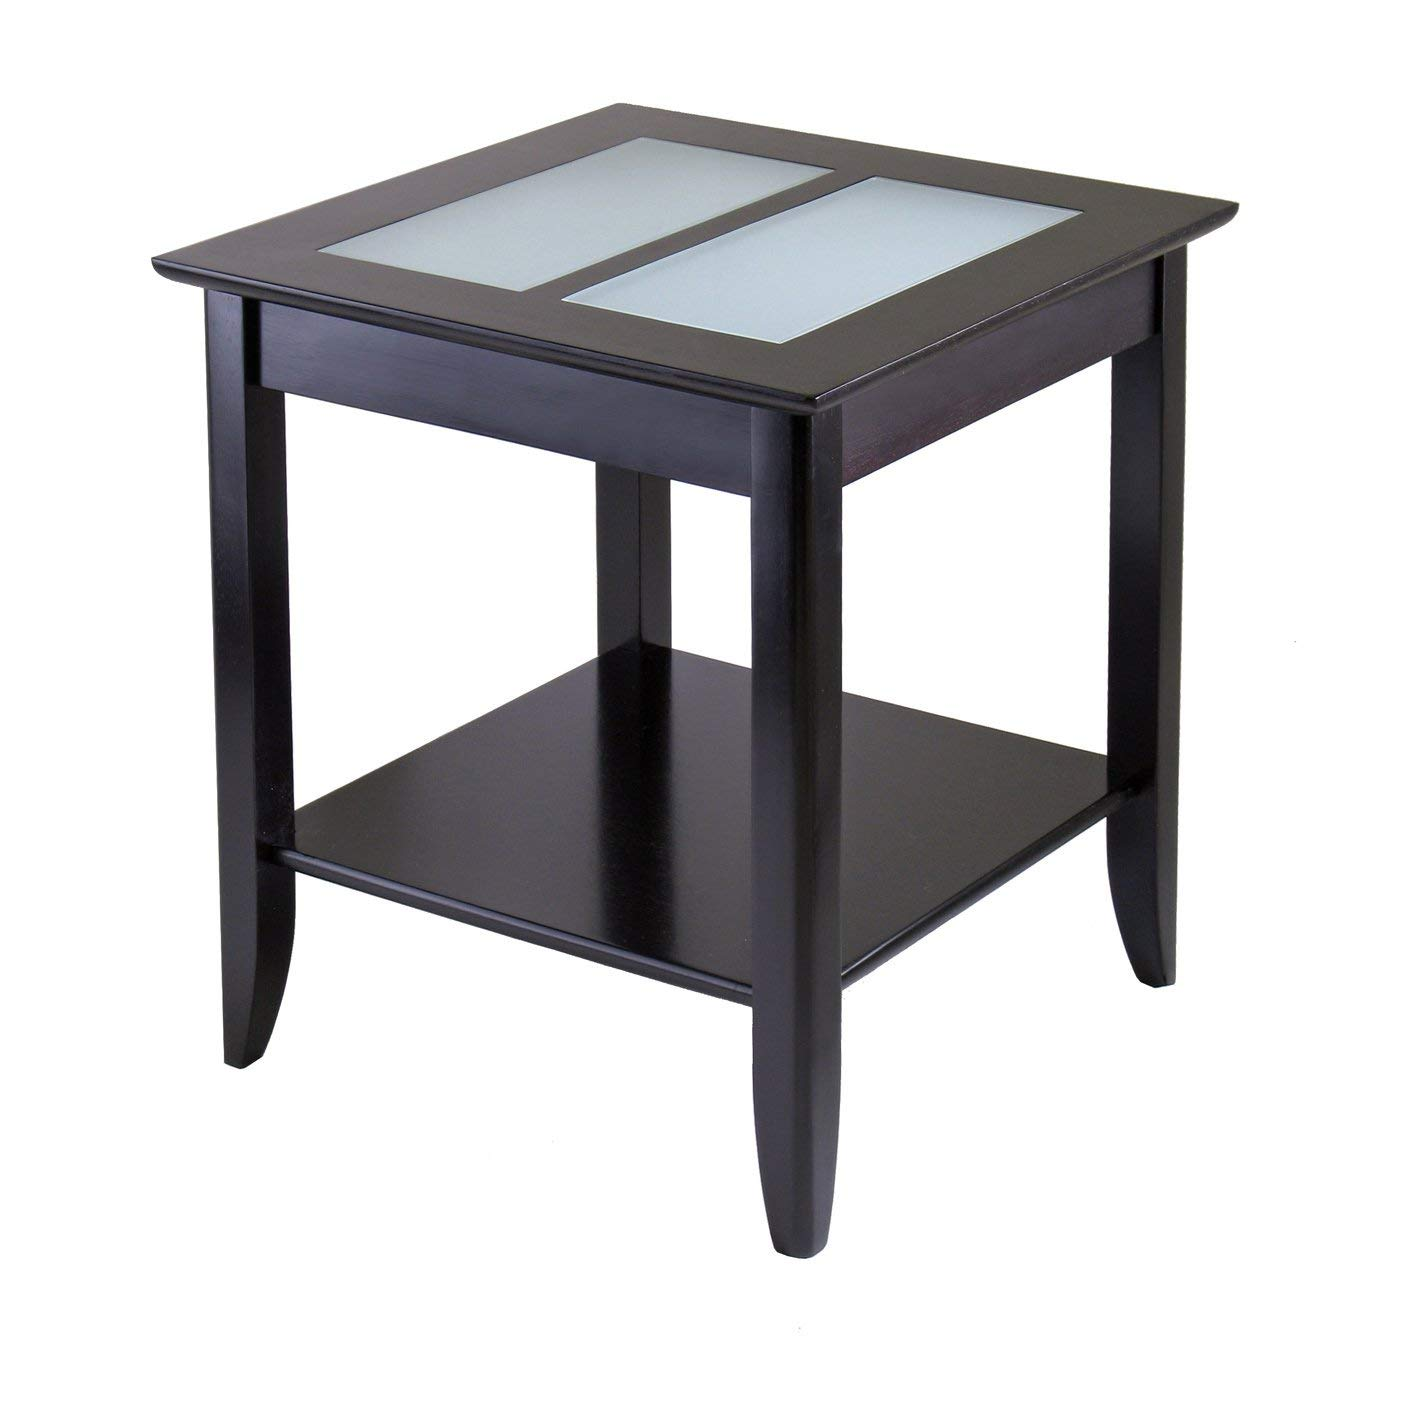 winsome syrah occasional table espresso kitchen end dining broyhill french country long sofa ashley furniture albany dark paint ryobi tools easy bedside stickley pittsburgh